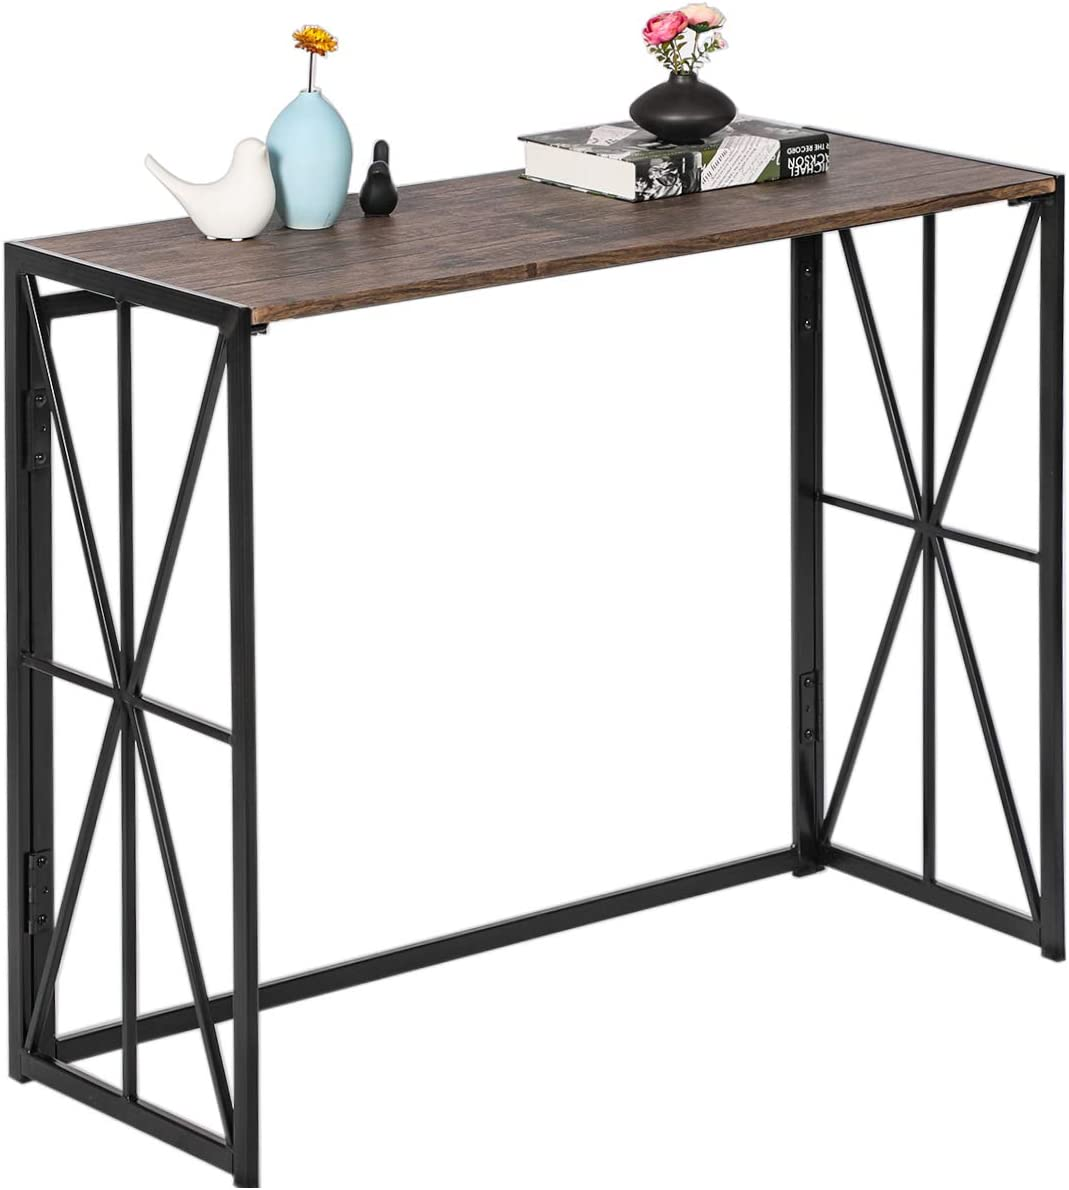 Console Sofa Table Folding Tall Wall Table for Entryway No-Assembly Living Room TV Entrance Table Kitchen Bar Table Industrial Home Office Computer Desk with Metal X-Frame, Rustic Brown Utility Tables